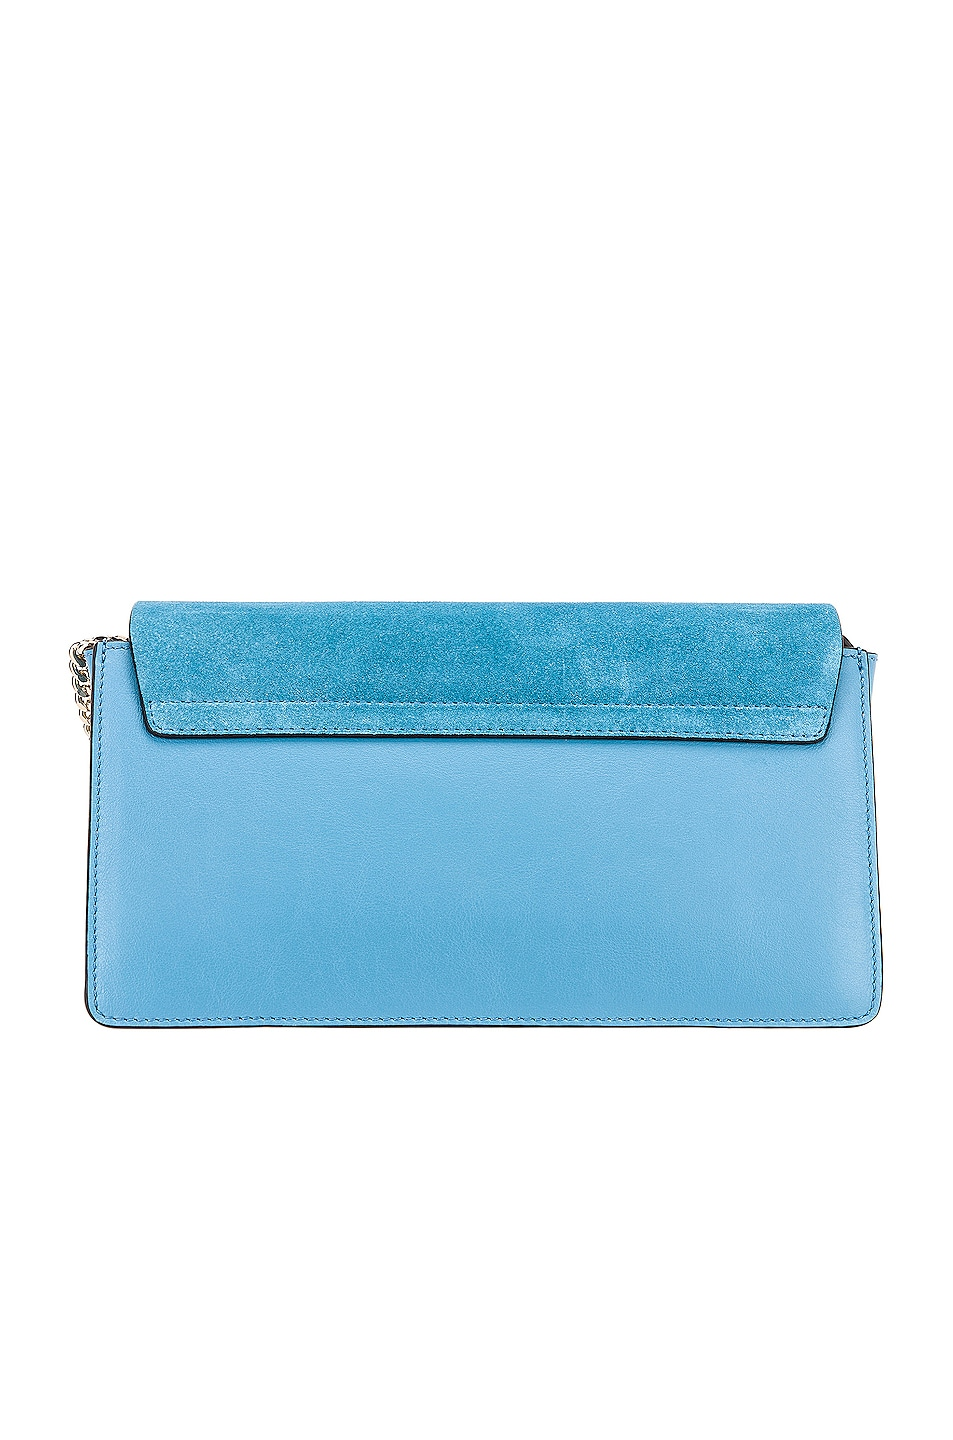 Image 3 of Chloe Small Faye Suede & Calfskin Shoulder Bag in Tomboy Blue